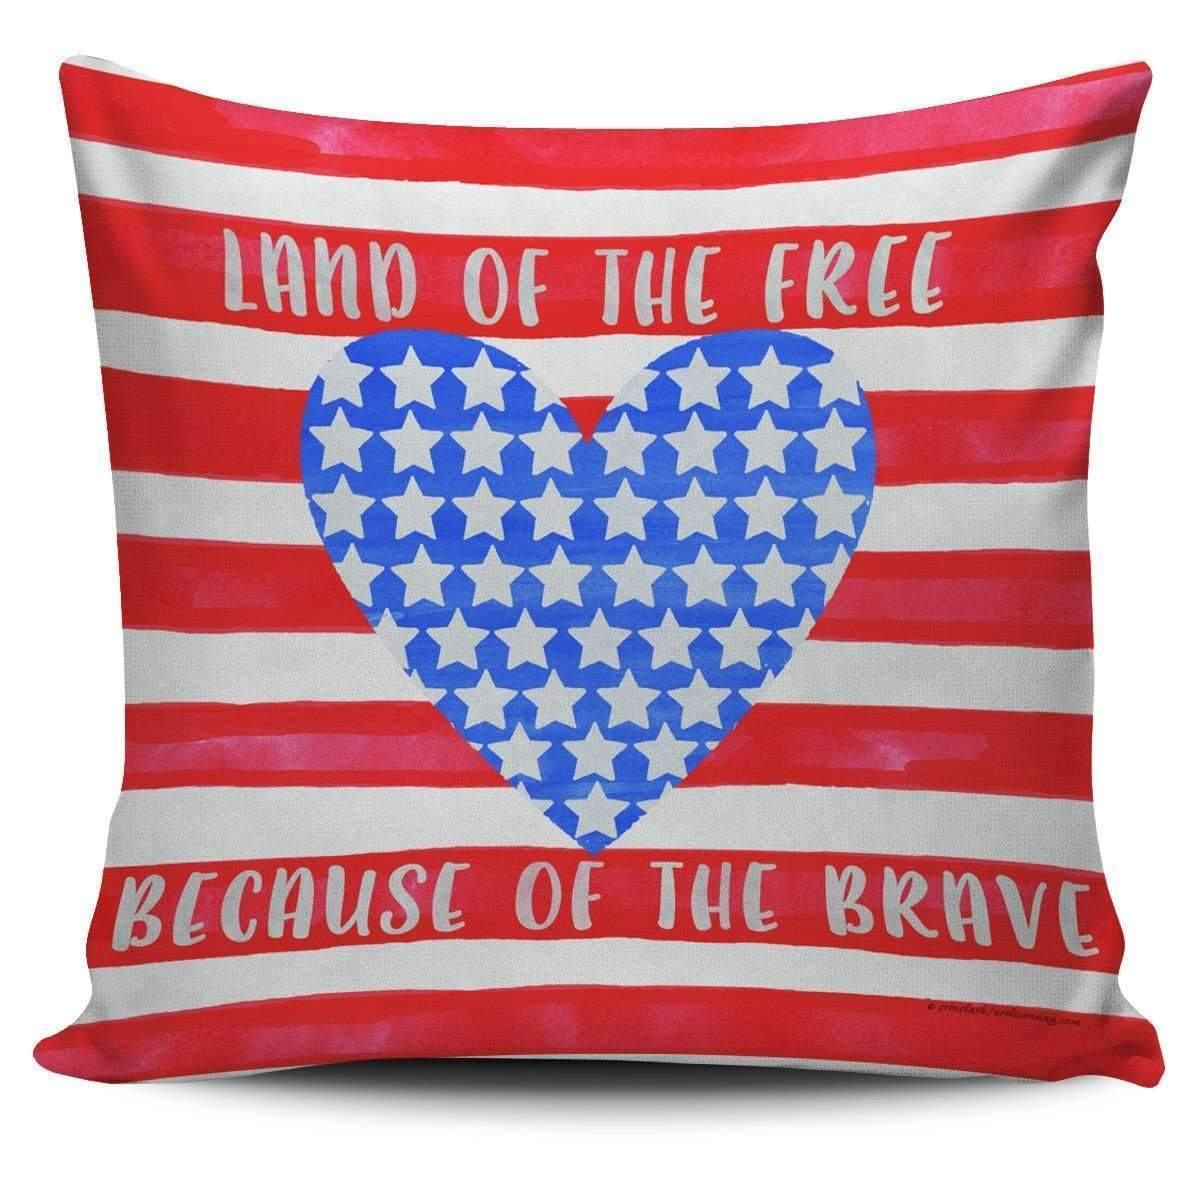 Land of the Free - Pillow Covers-Land of the Free - 1-PP.1399374-Shopeholic